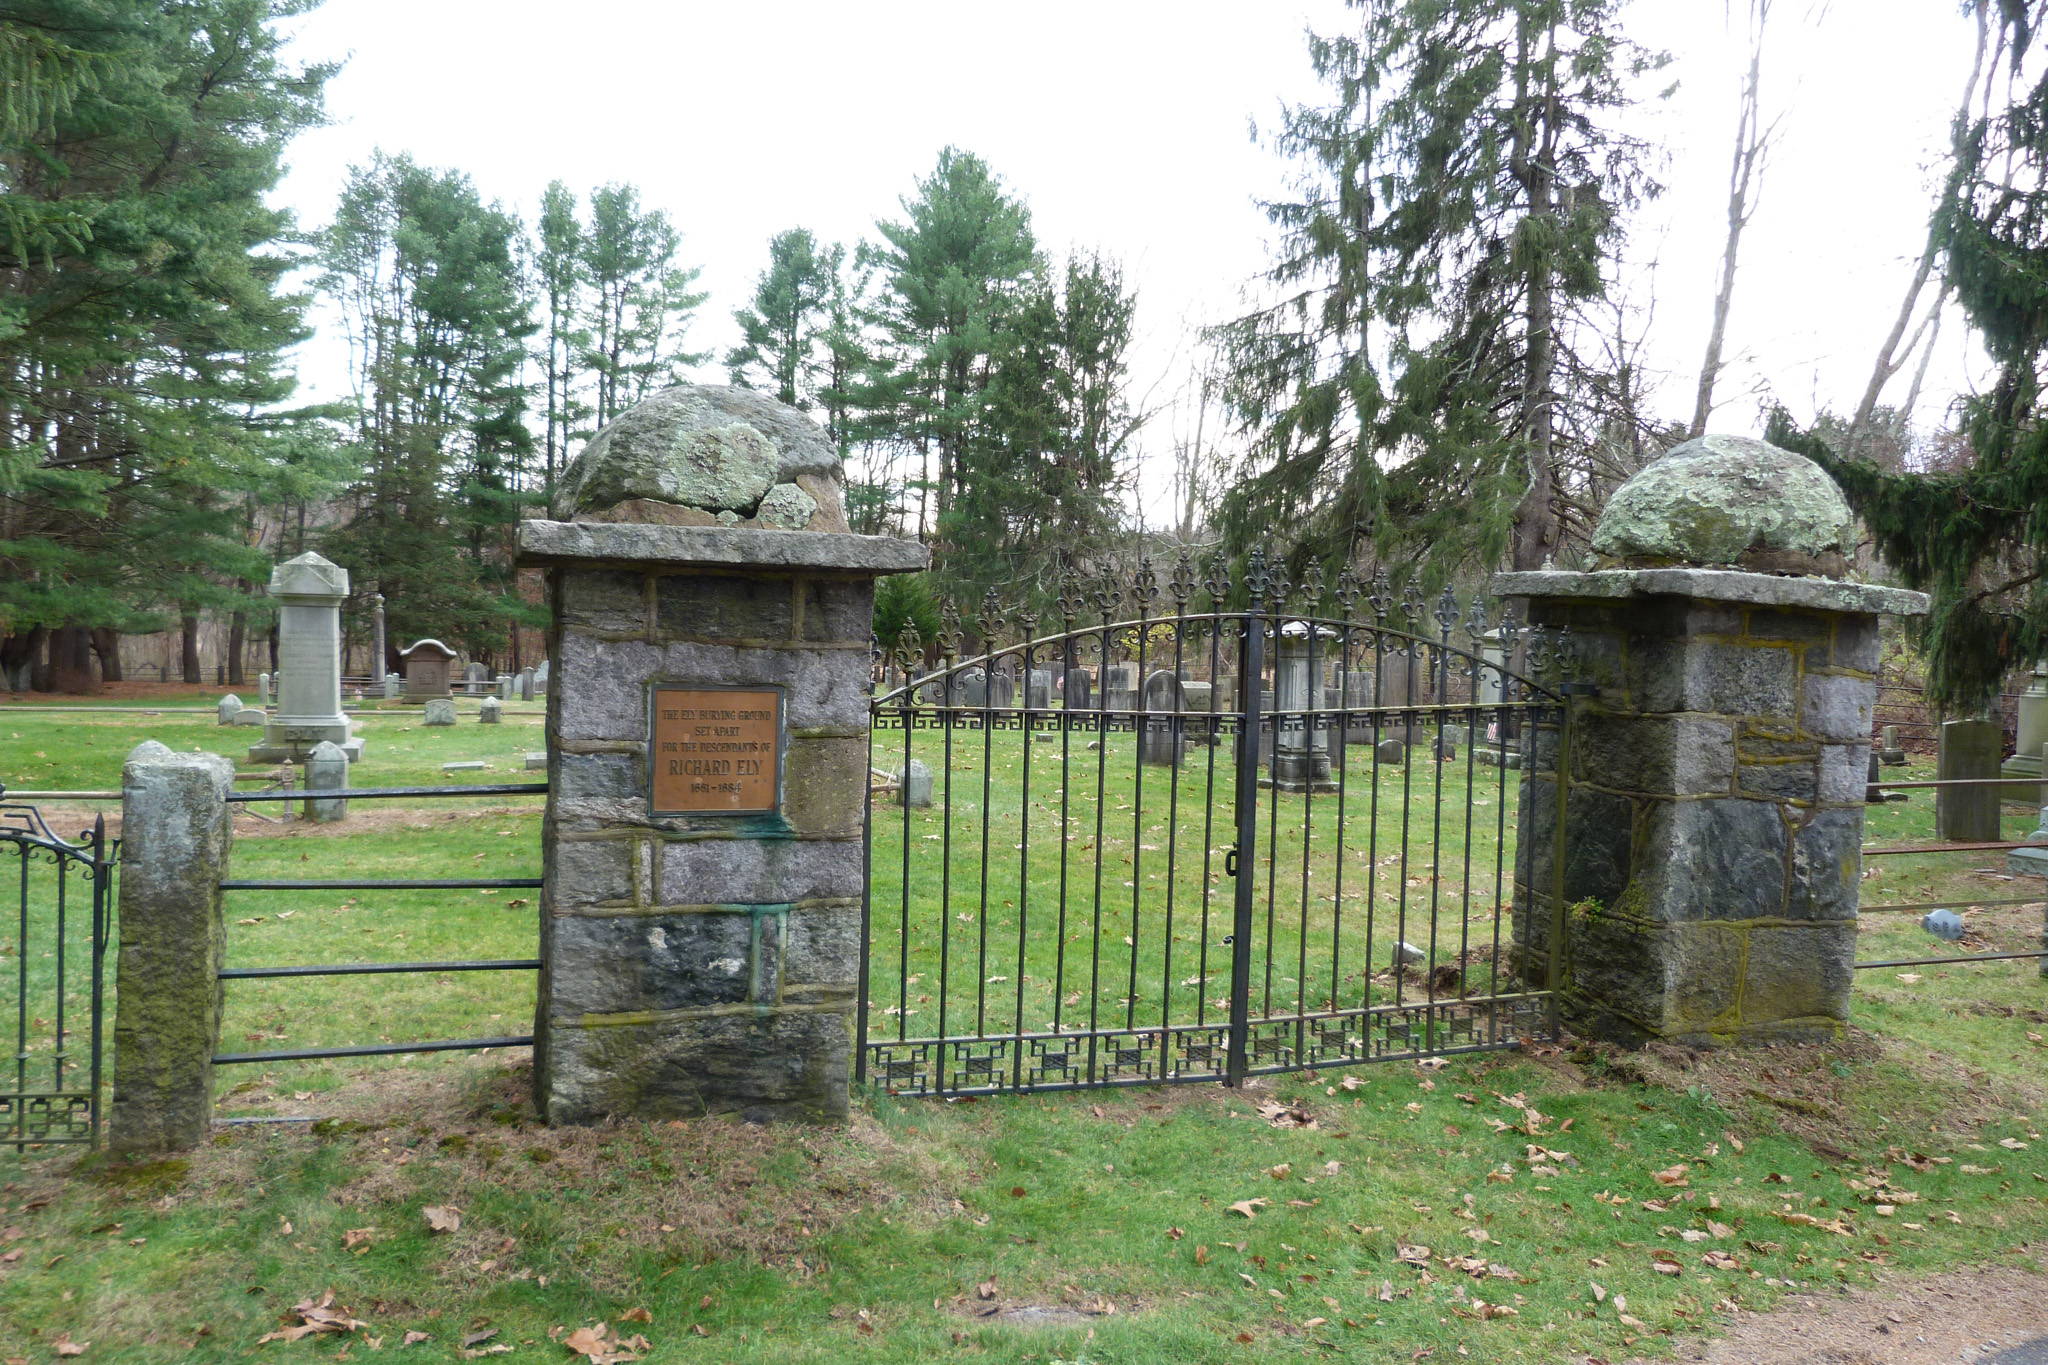 Ely Cemetery in Lyme CT